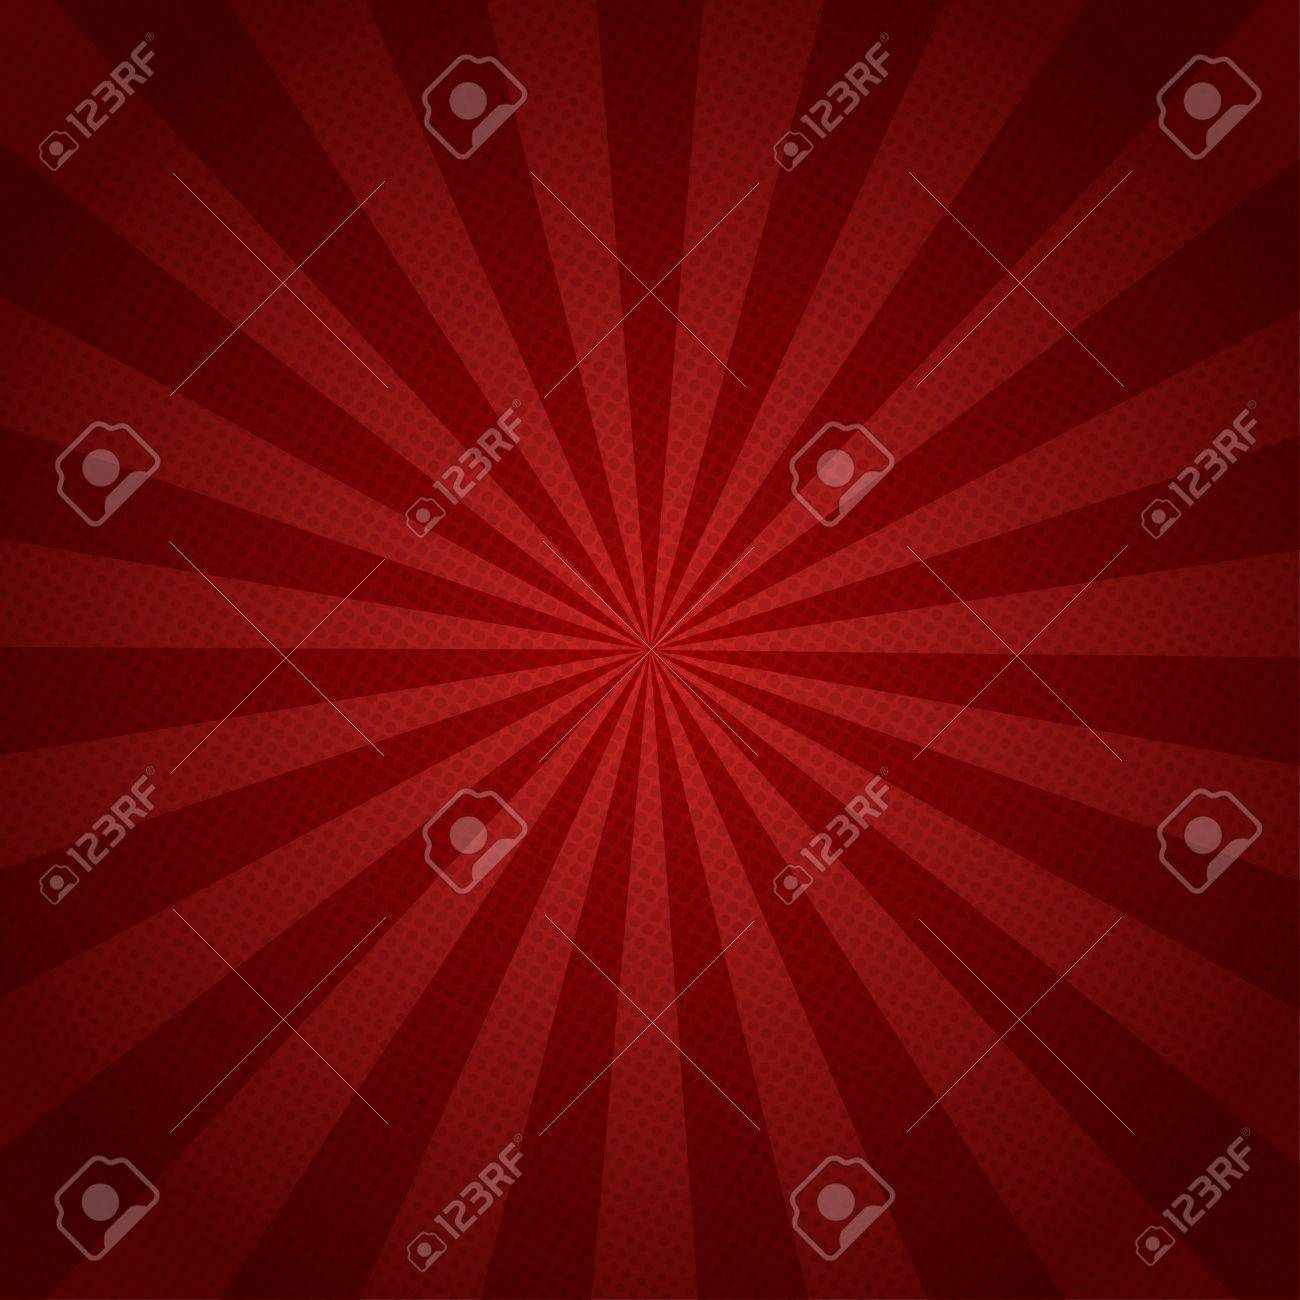 Red rays retro background with halftones stylish - 55803271